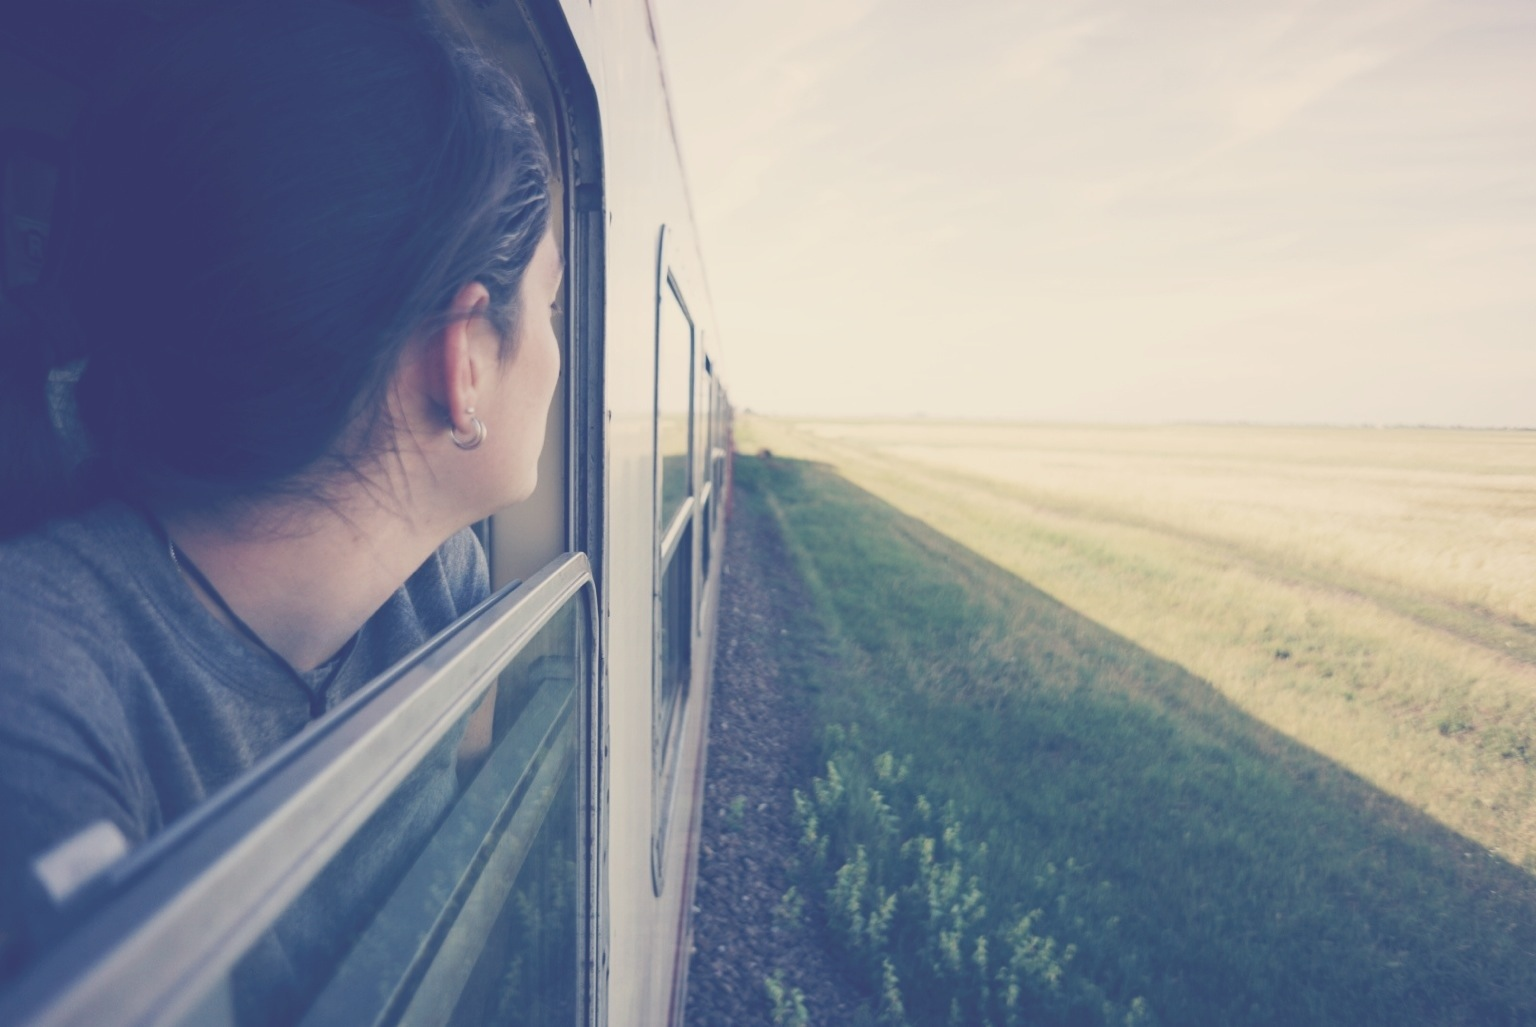 Sarah peering out at Romanian countryside